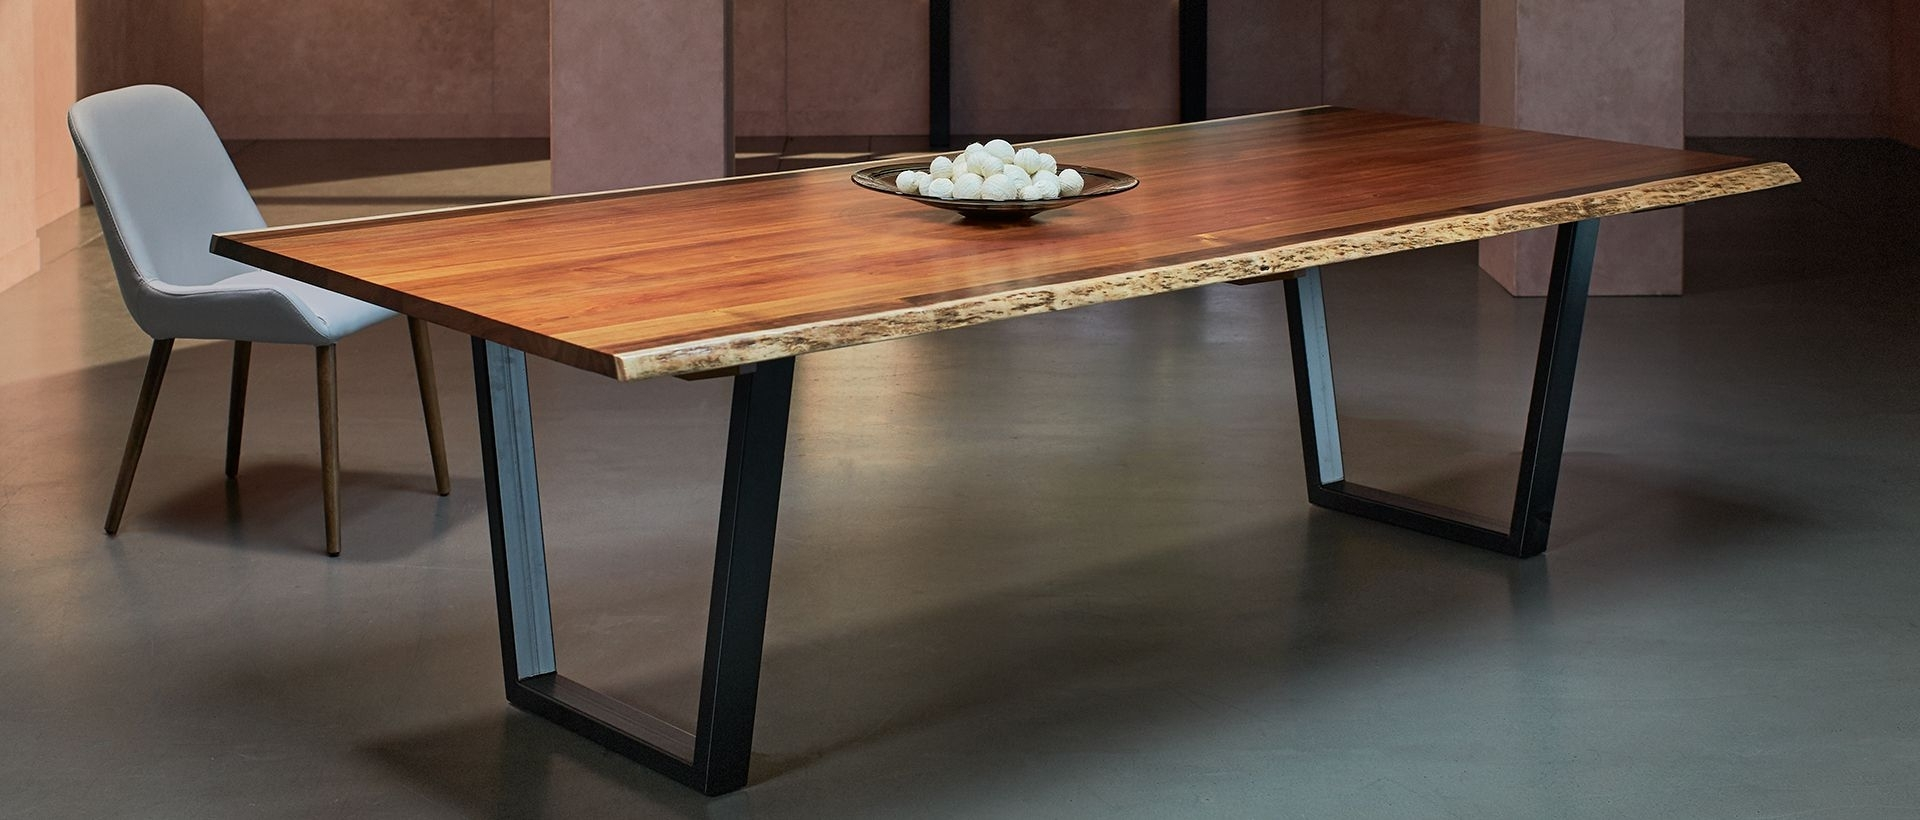 Most Recently Released Perth Dining Tables For Nick Scali (Gallery 2 of 25)